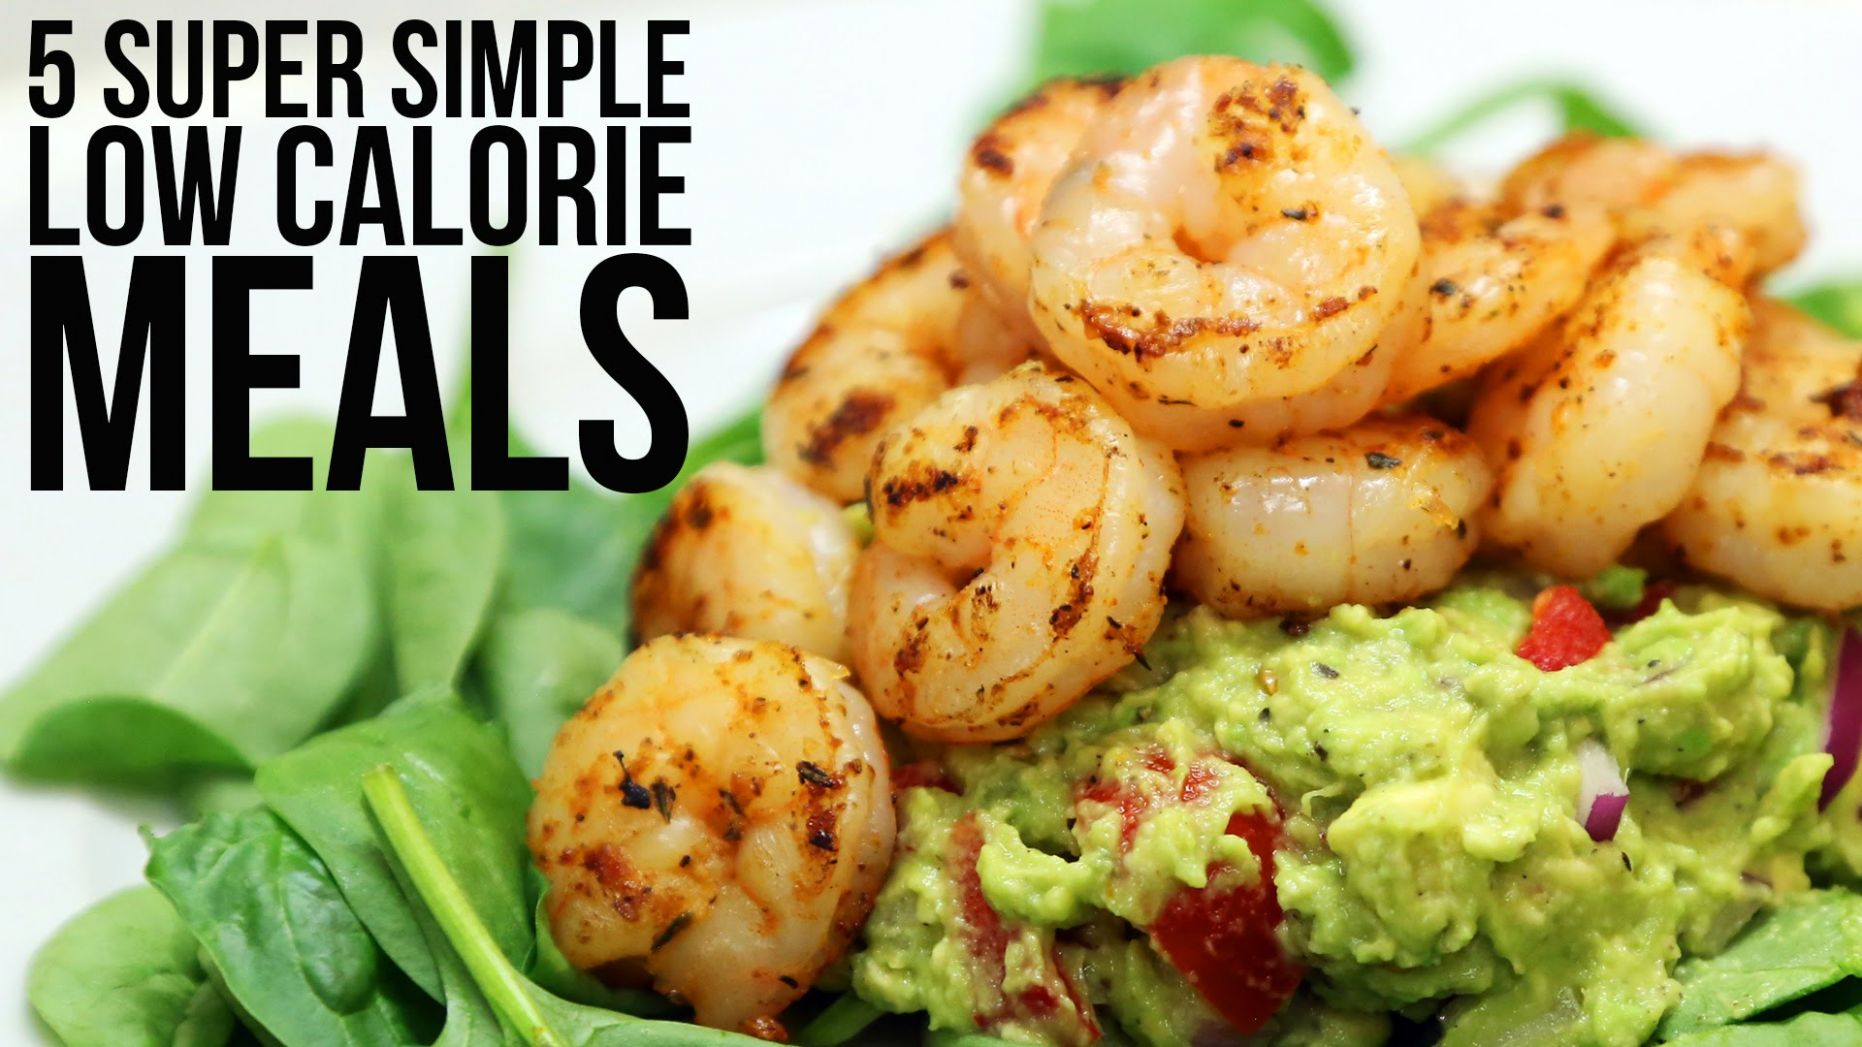 12 Super Simple Low Calorie Meals | DietMenuRecipes